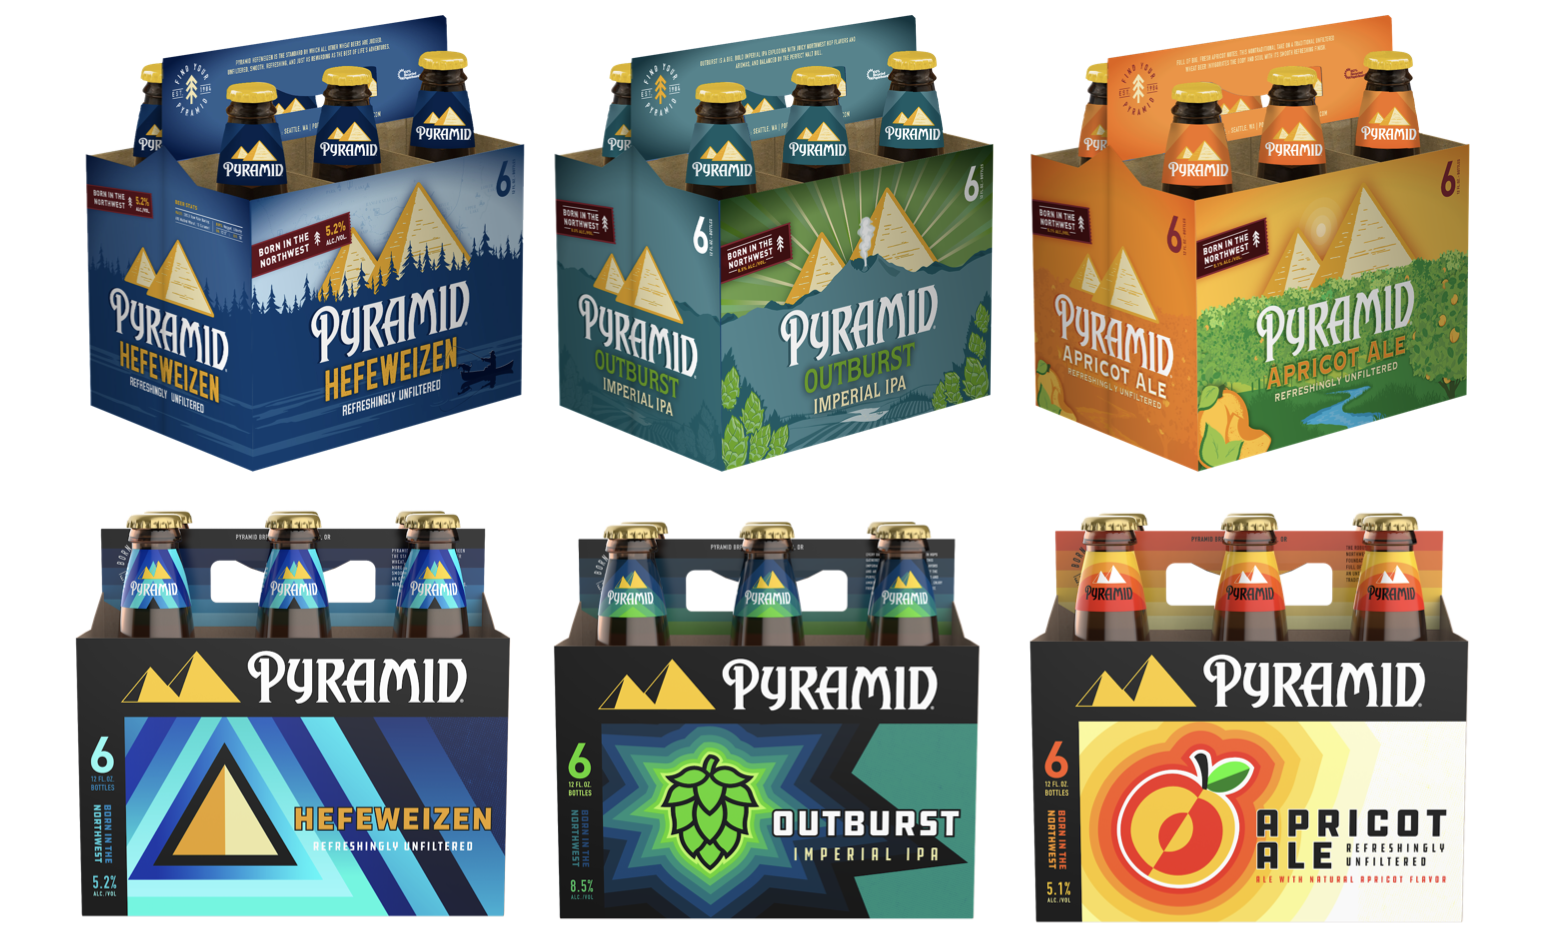 Former and Updated Pyramid Brewing 6-pack packaging of Hefeweizen, Outburst Imperial IPA, and Apricot Ale.